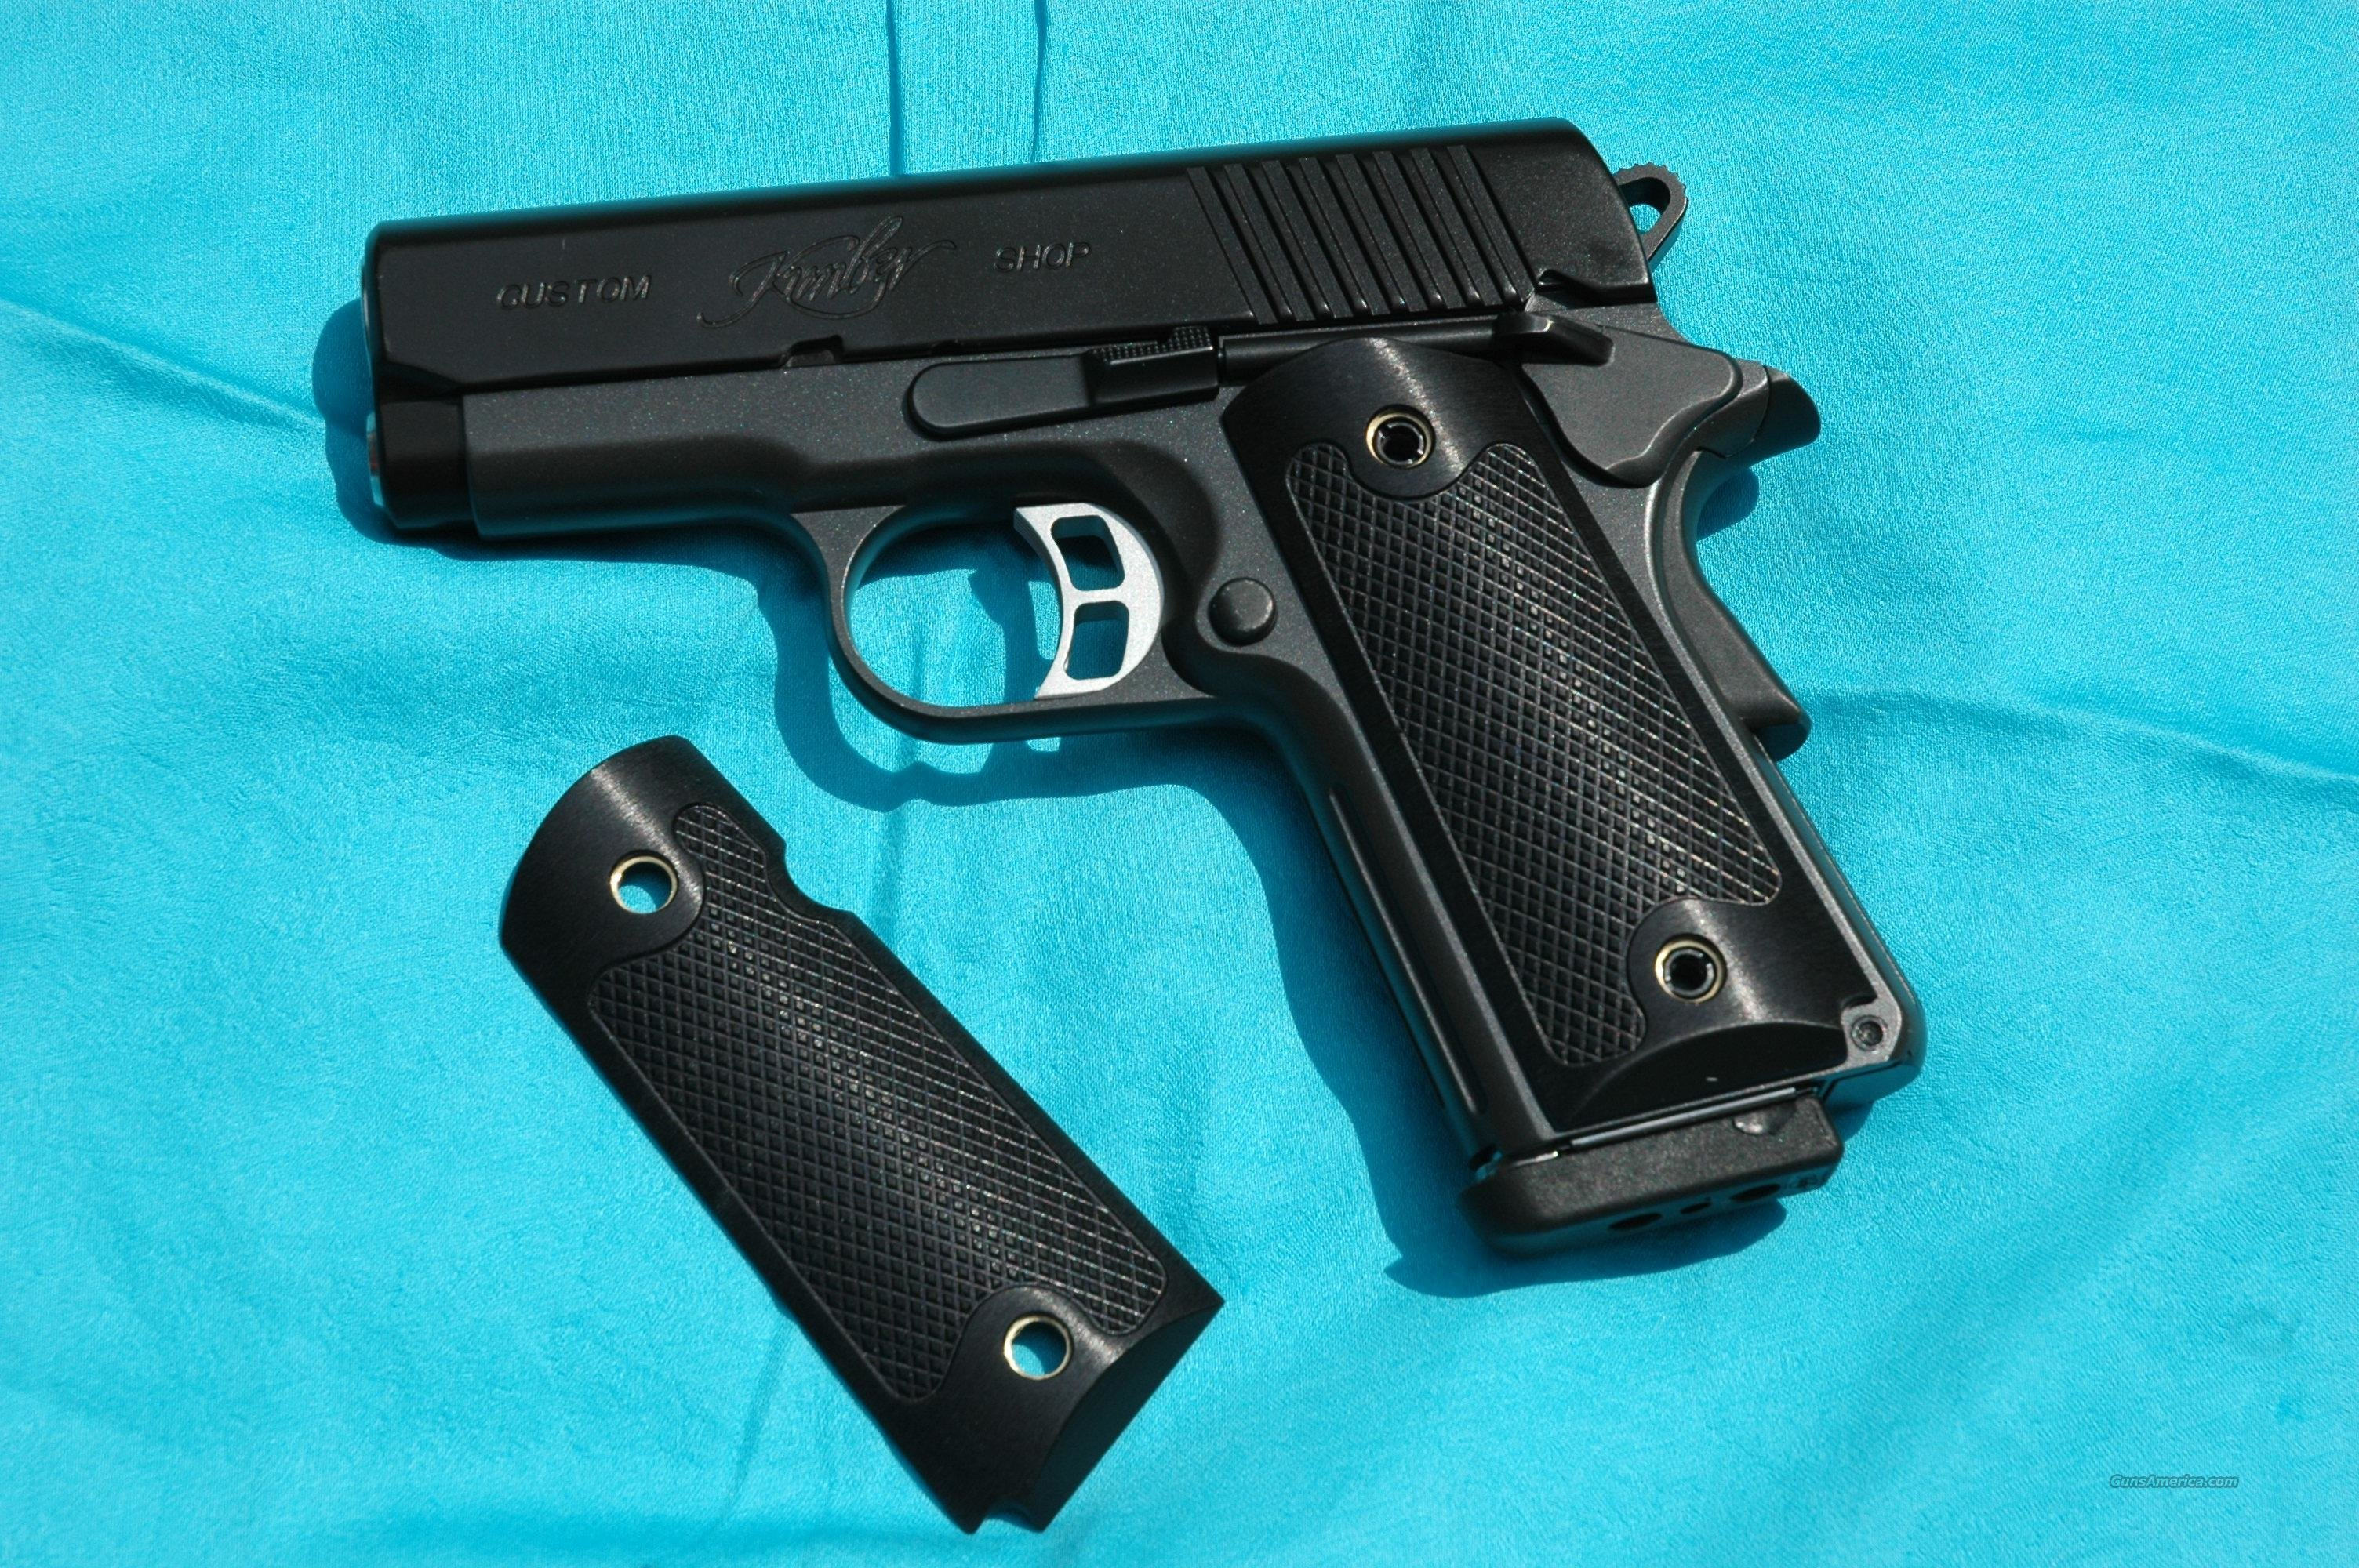 1911 compact black aluminum grips gorgeous   Non-Guns > Gun Parts > Grips > 1911